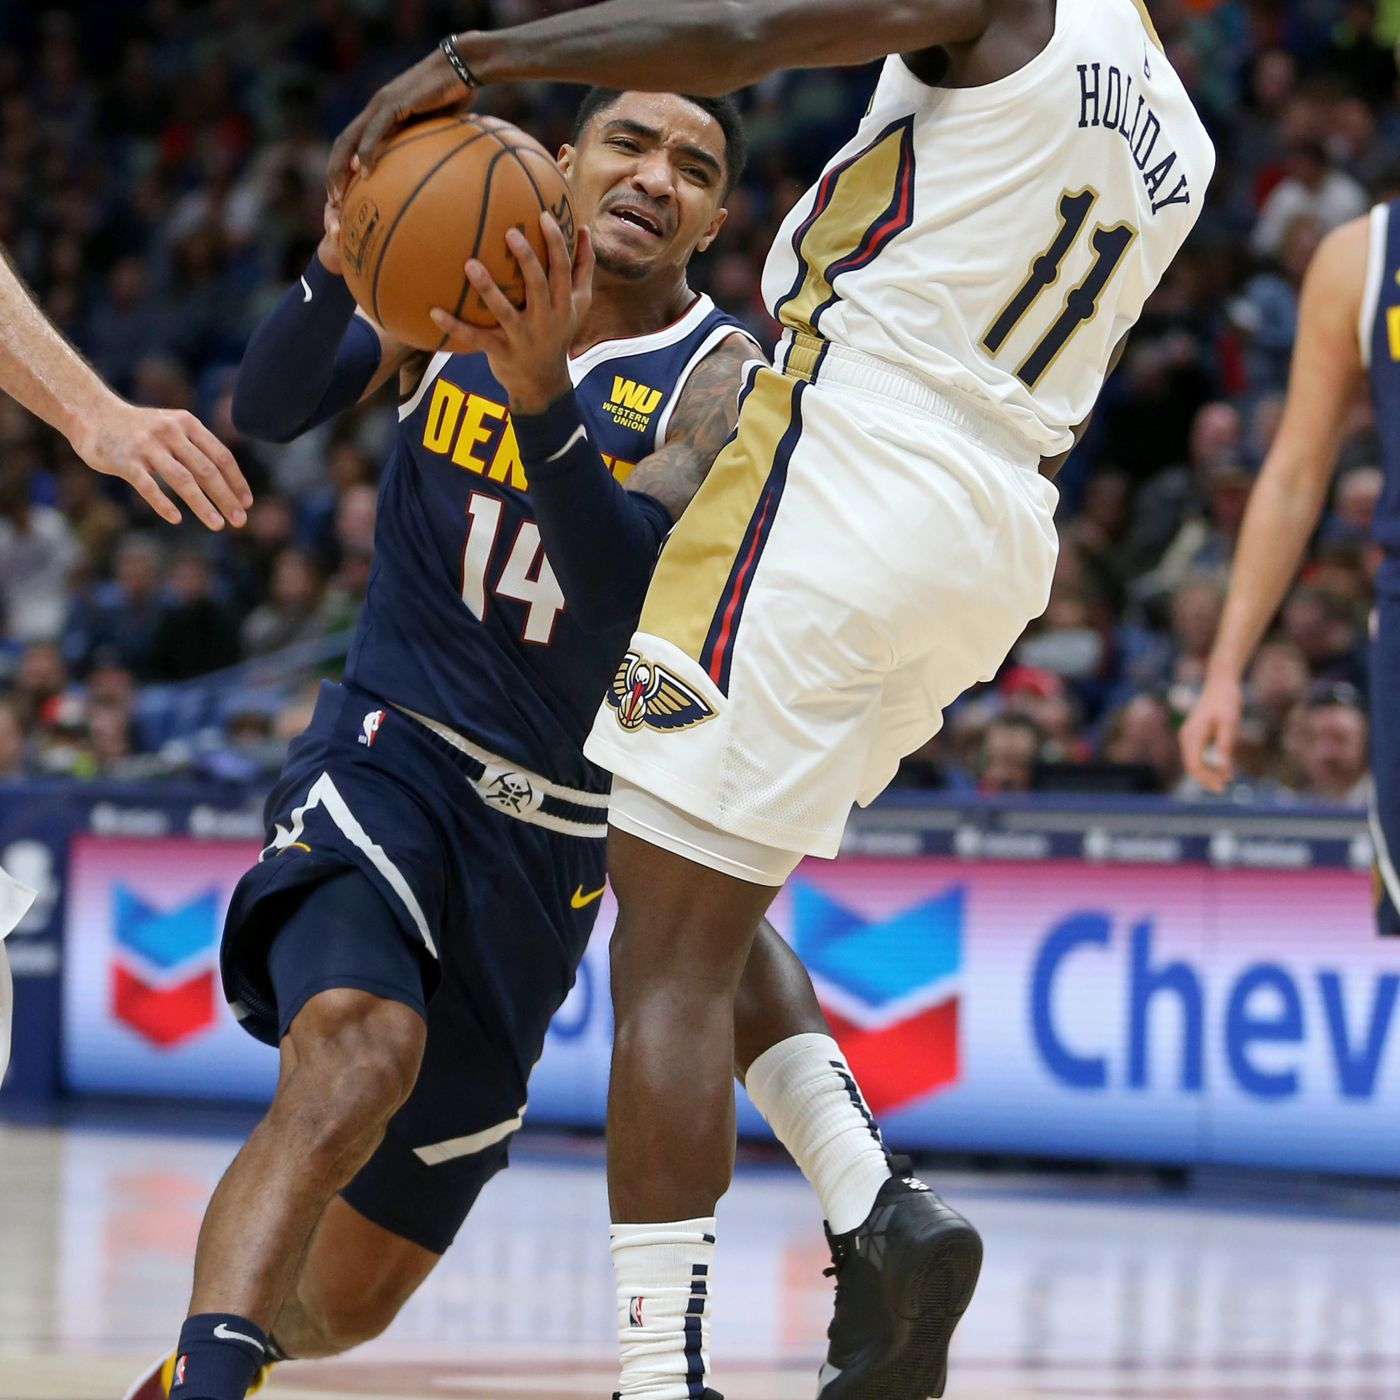 6f52fc68caa5 Jrue Holiday is cold-blooded monster who could help propel New Orleans  Pelicans to best season ever - The Bird Writes